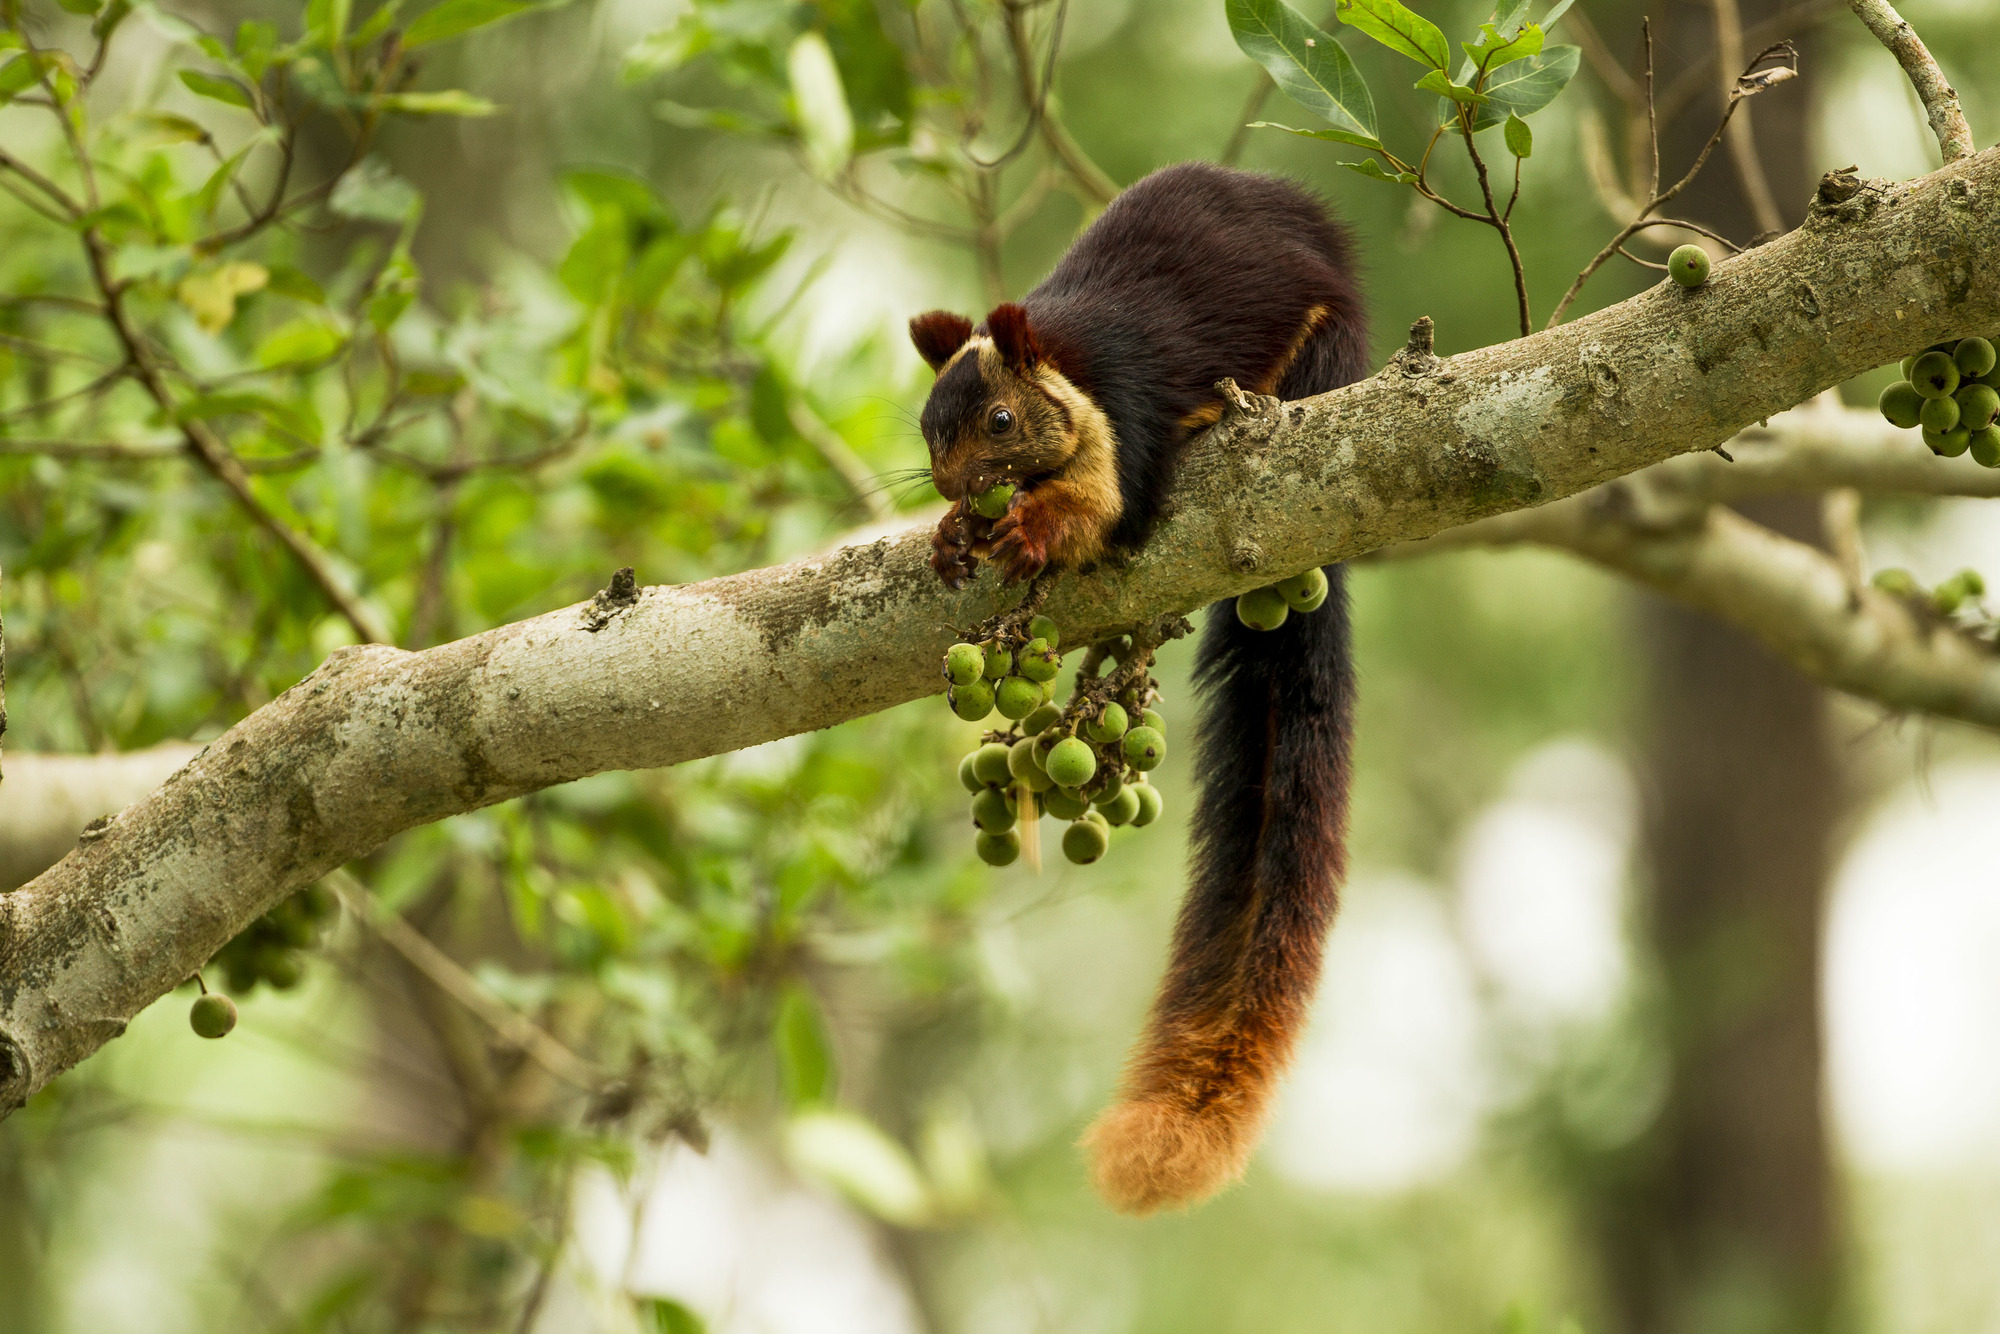 The Malabar giant squirrel lives in the forests of India © Sadesh Kadur/Felis Images